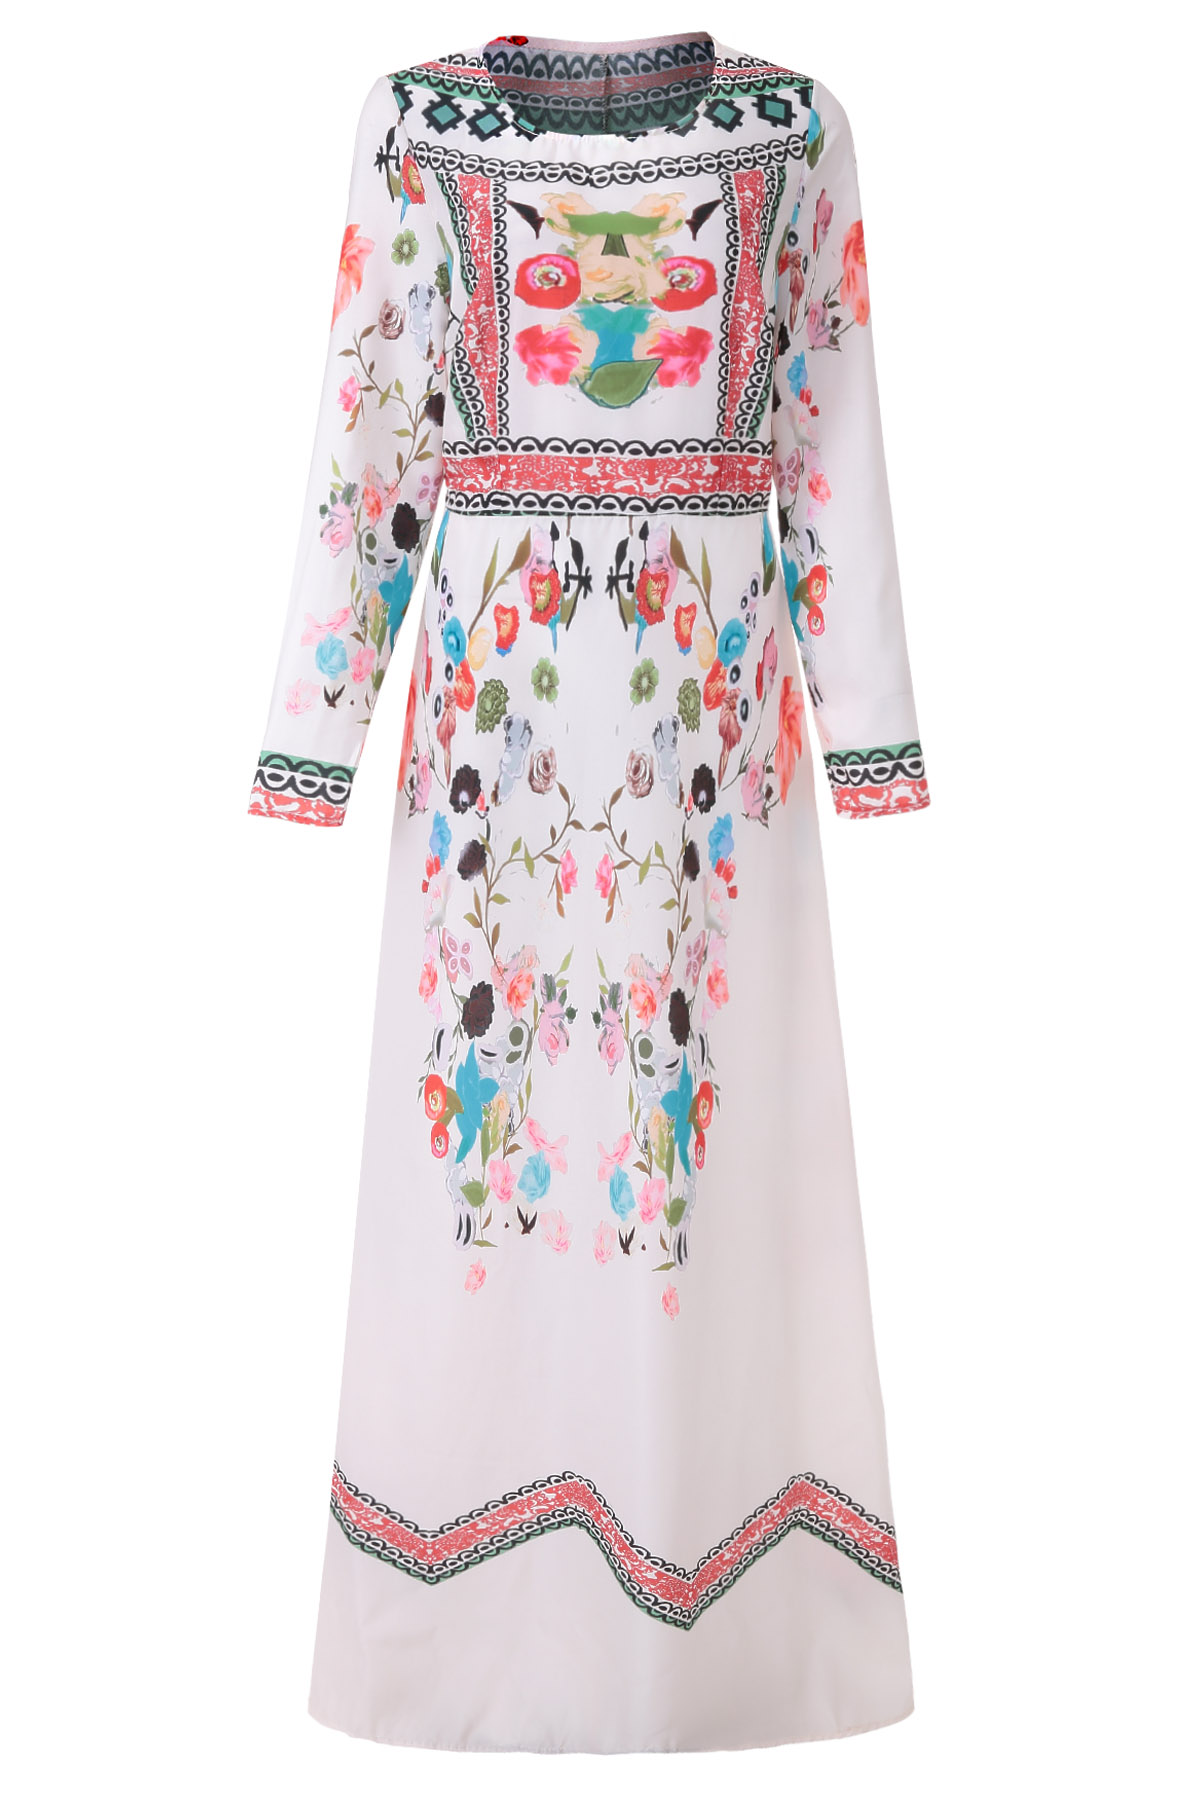 Jewel Neck Colorful Print Floral Long Sleeve Dress - BLUE S